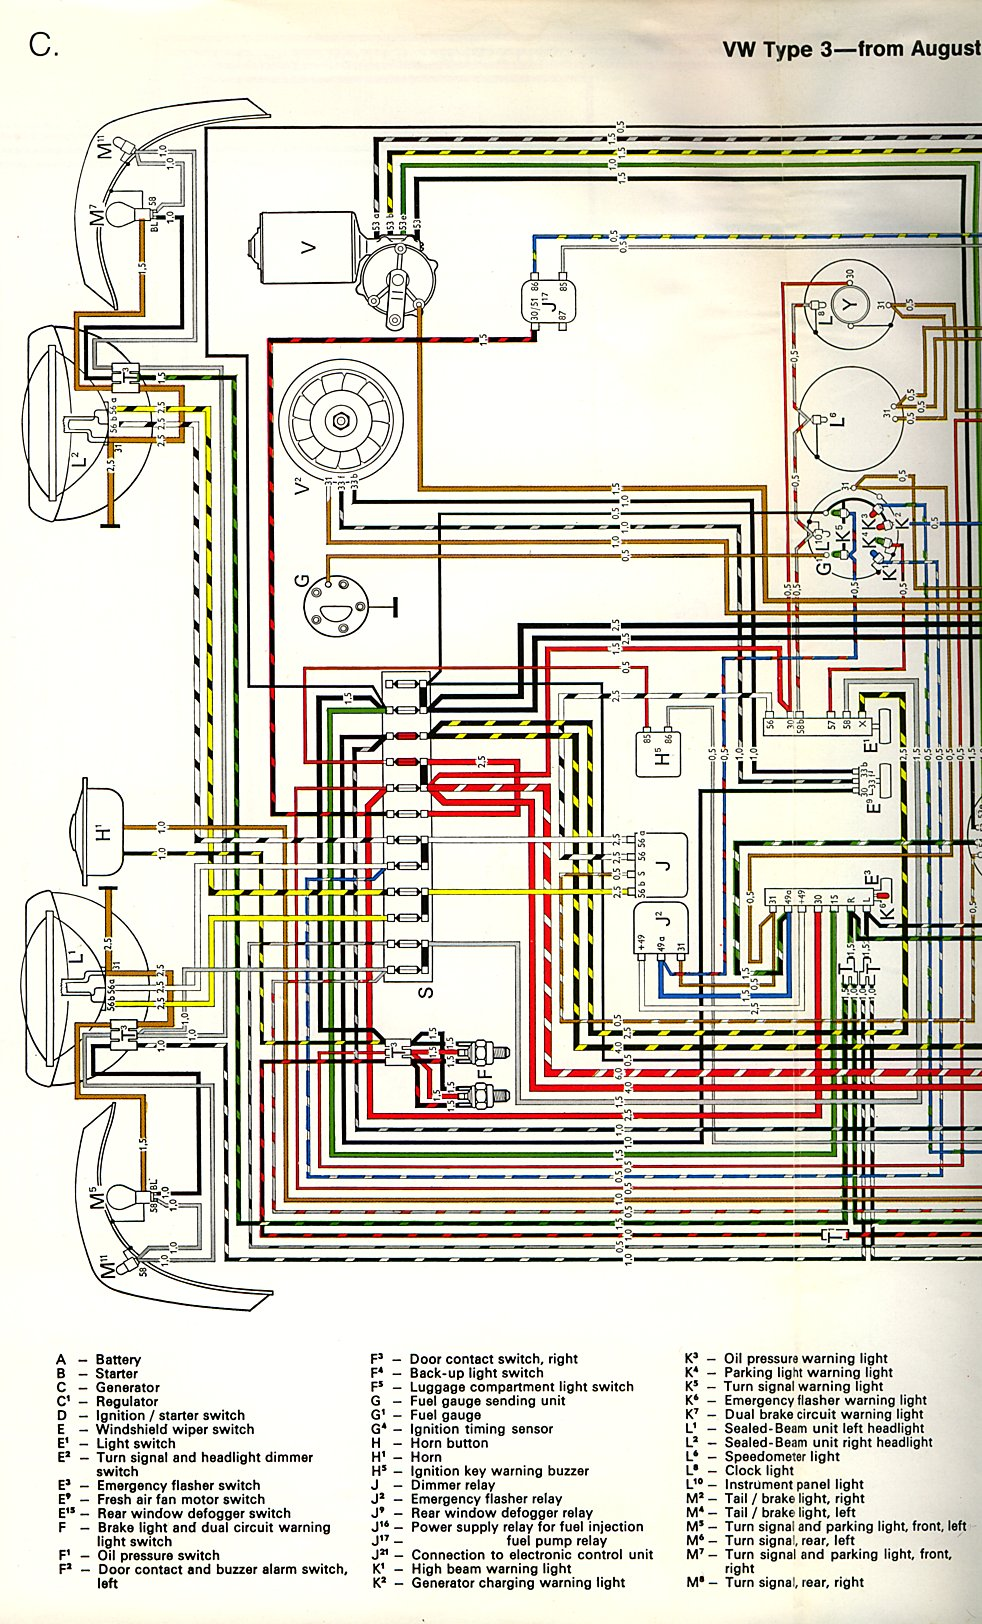 thesamba com type 3 wiring diagrams 1971 VW Super Beetle Wiring Diagram Vw Type 3 Wiring Diagram #6